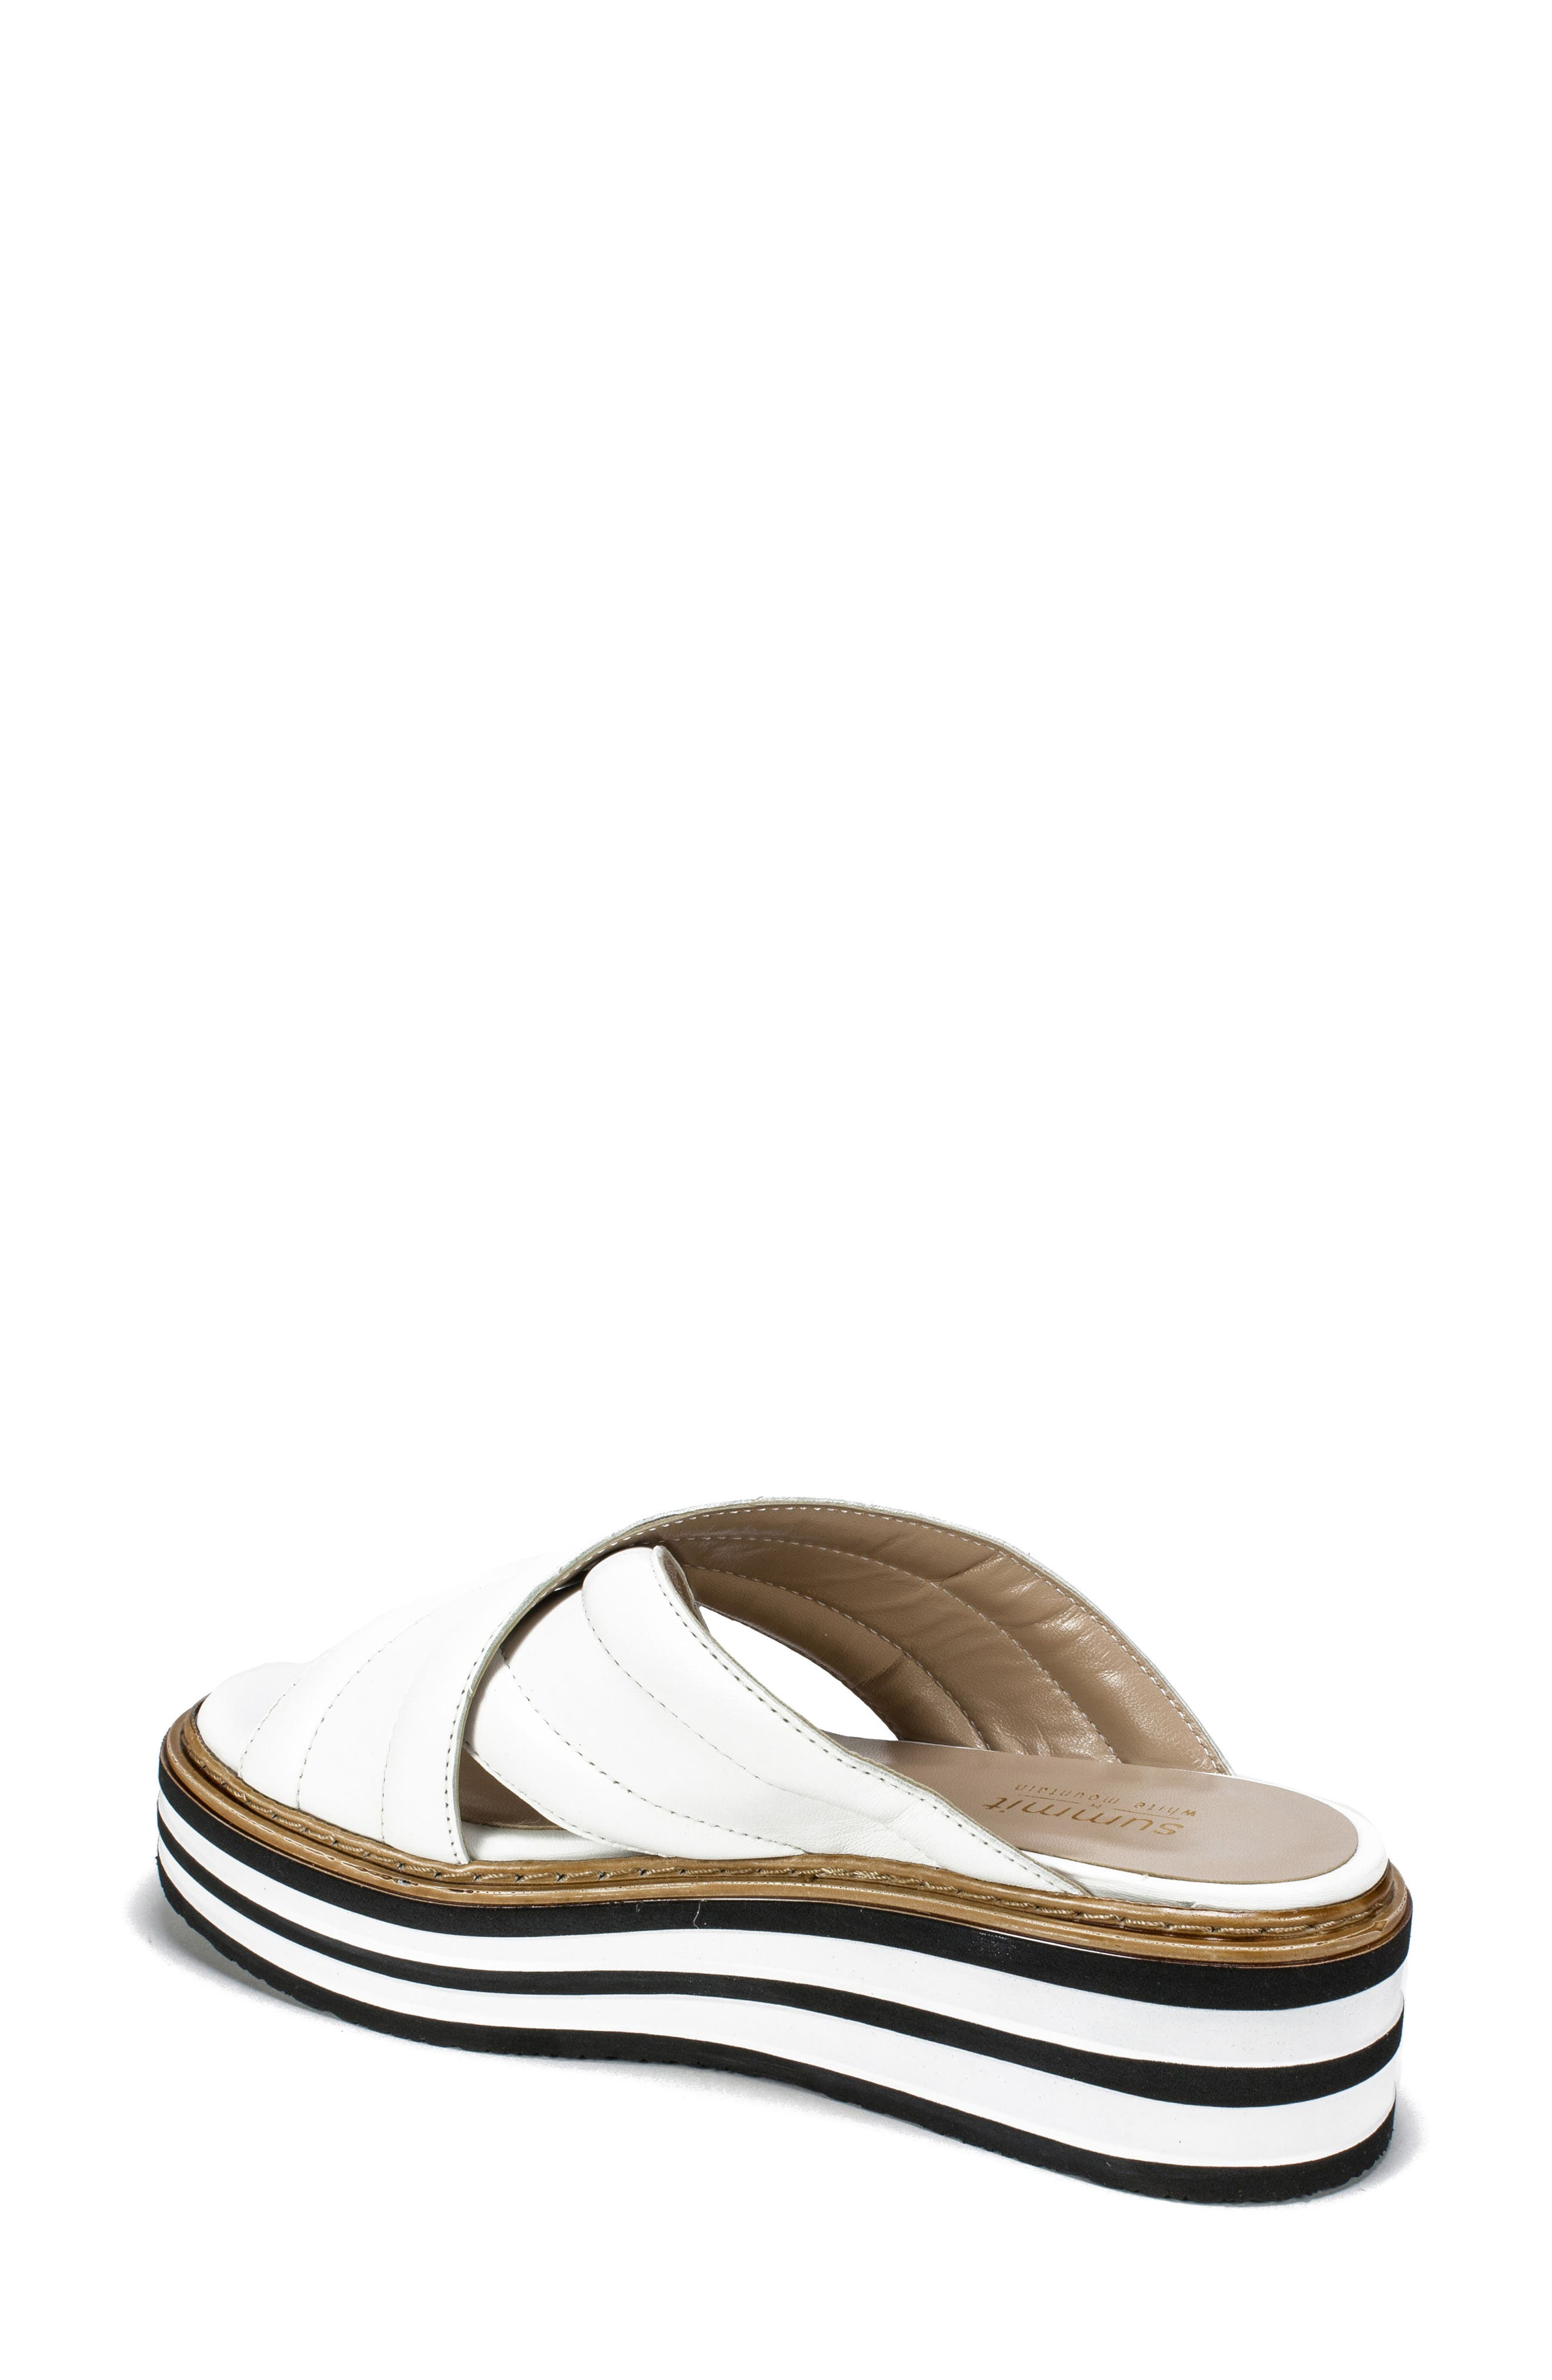 SUMMIT,                             by White Mountain Lowell Platform Slide Sandal,                             Alternate thumbnail 2, color,                             WHITE LEATHER